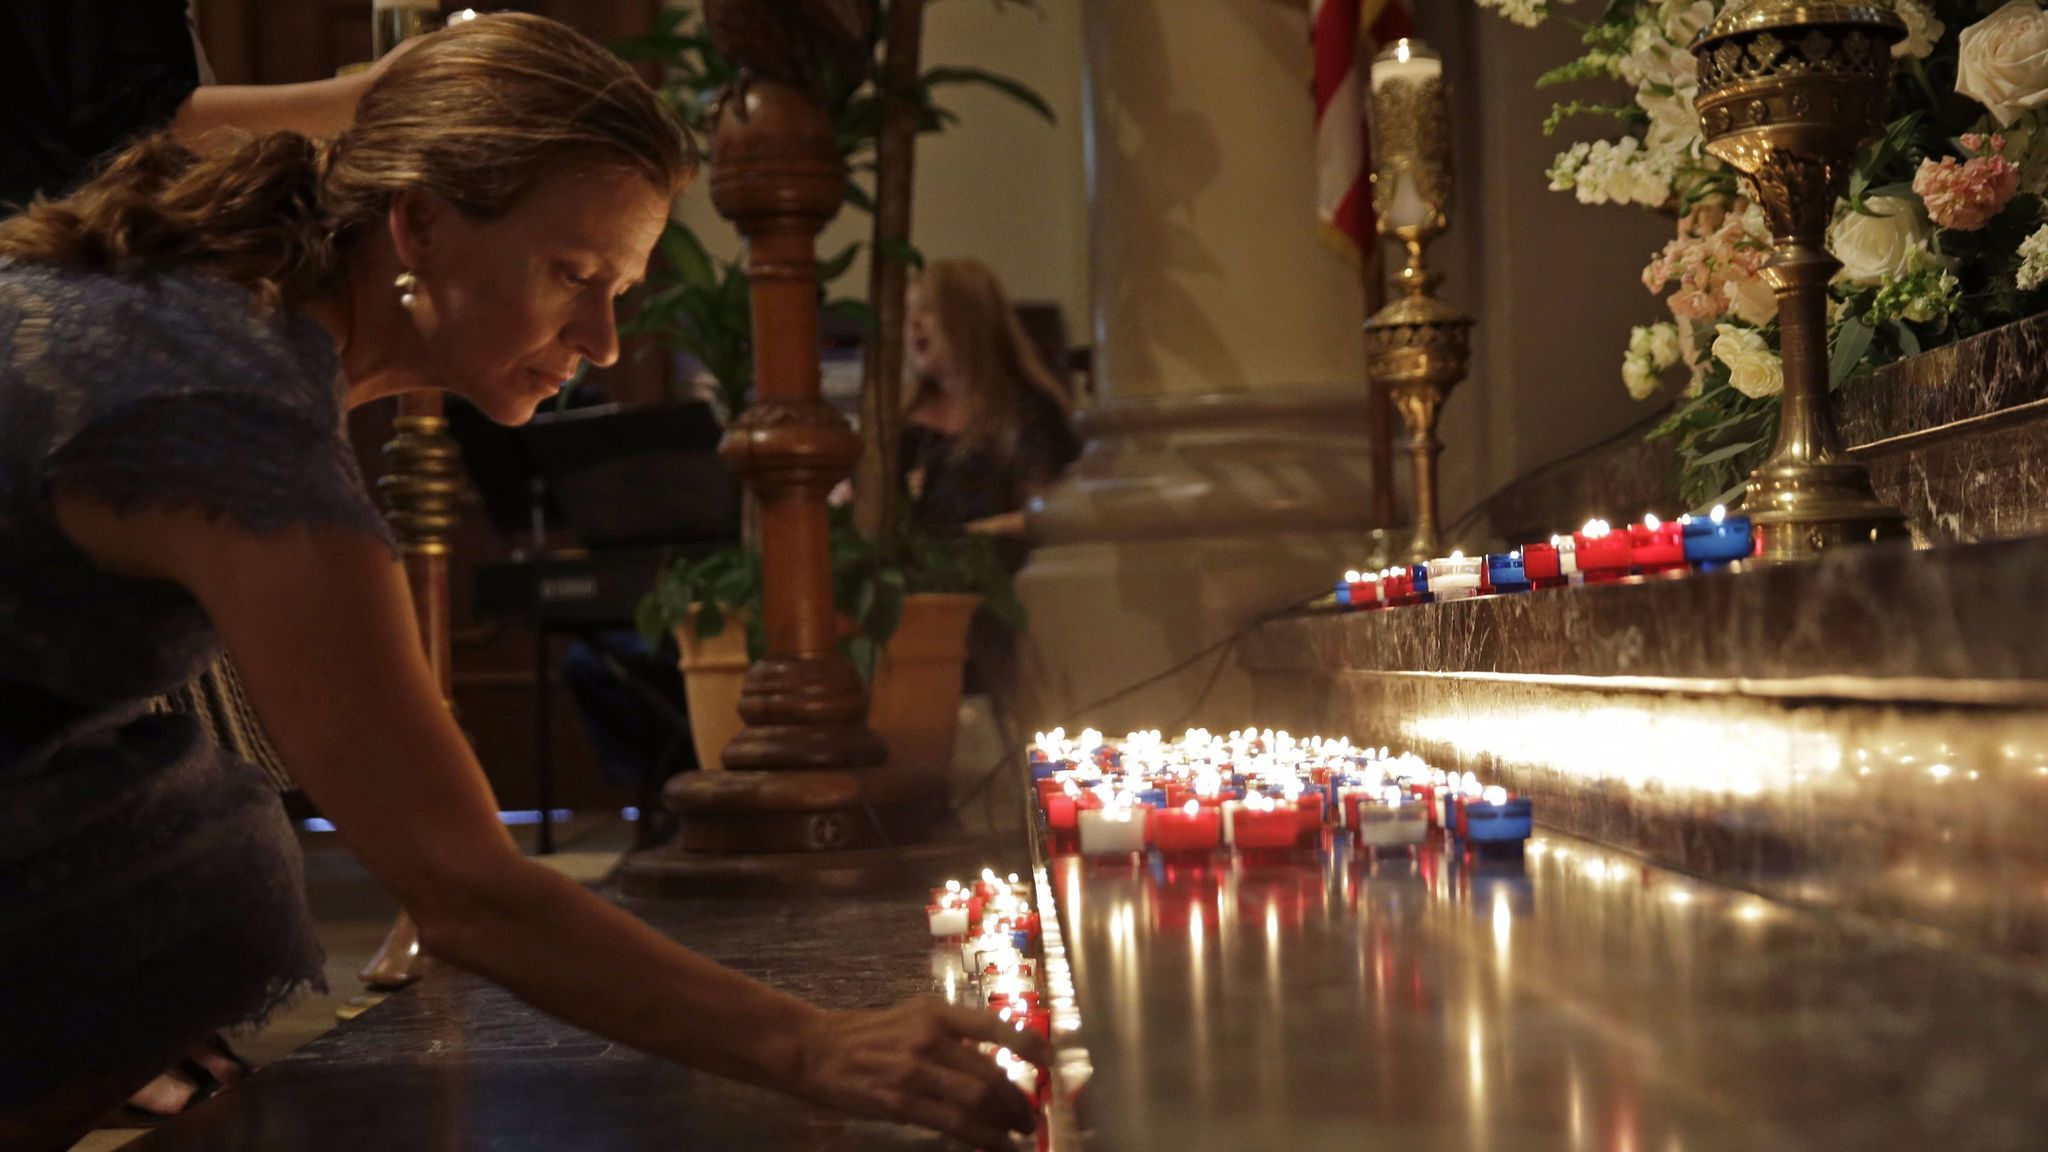 A woman places a candle on the altar during a prayer service for the victims of the Grand 16 theater shooting at the Cathedral of St. John the Evangelist, in Lafayette, La., on July 26, 2015.